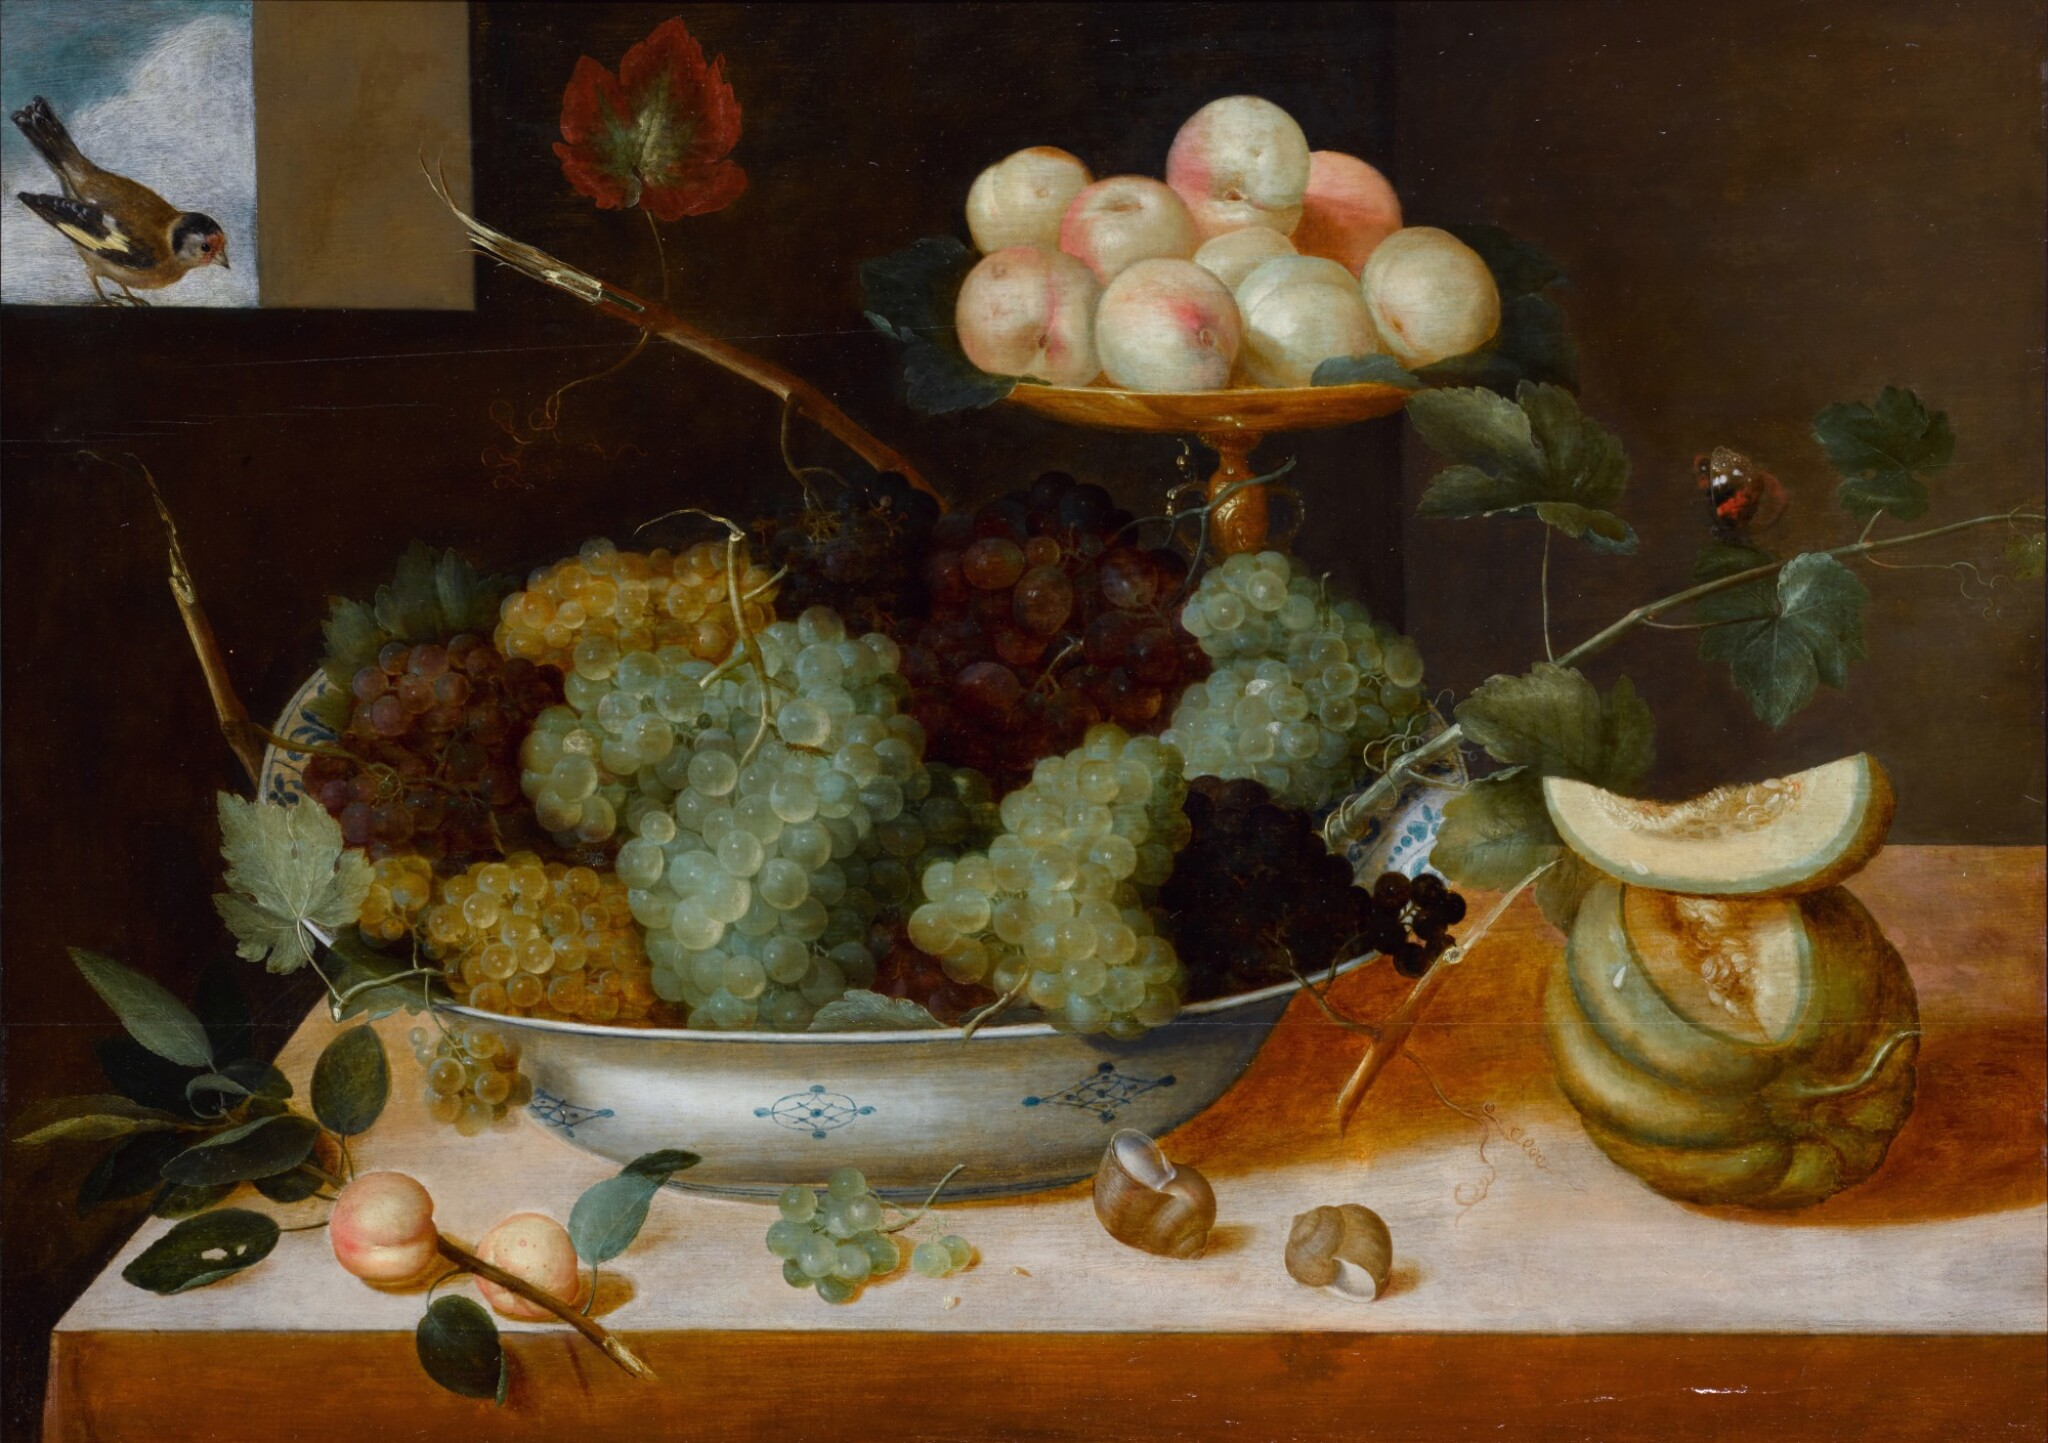 View 1 of Lot 137. Still life with grapes in a porcelain dish and peaches on a tazza, with melons and snails.